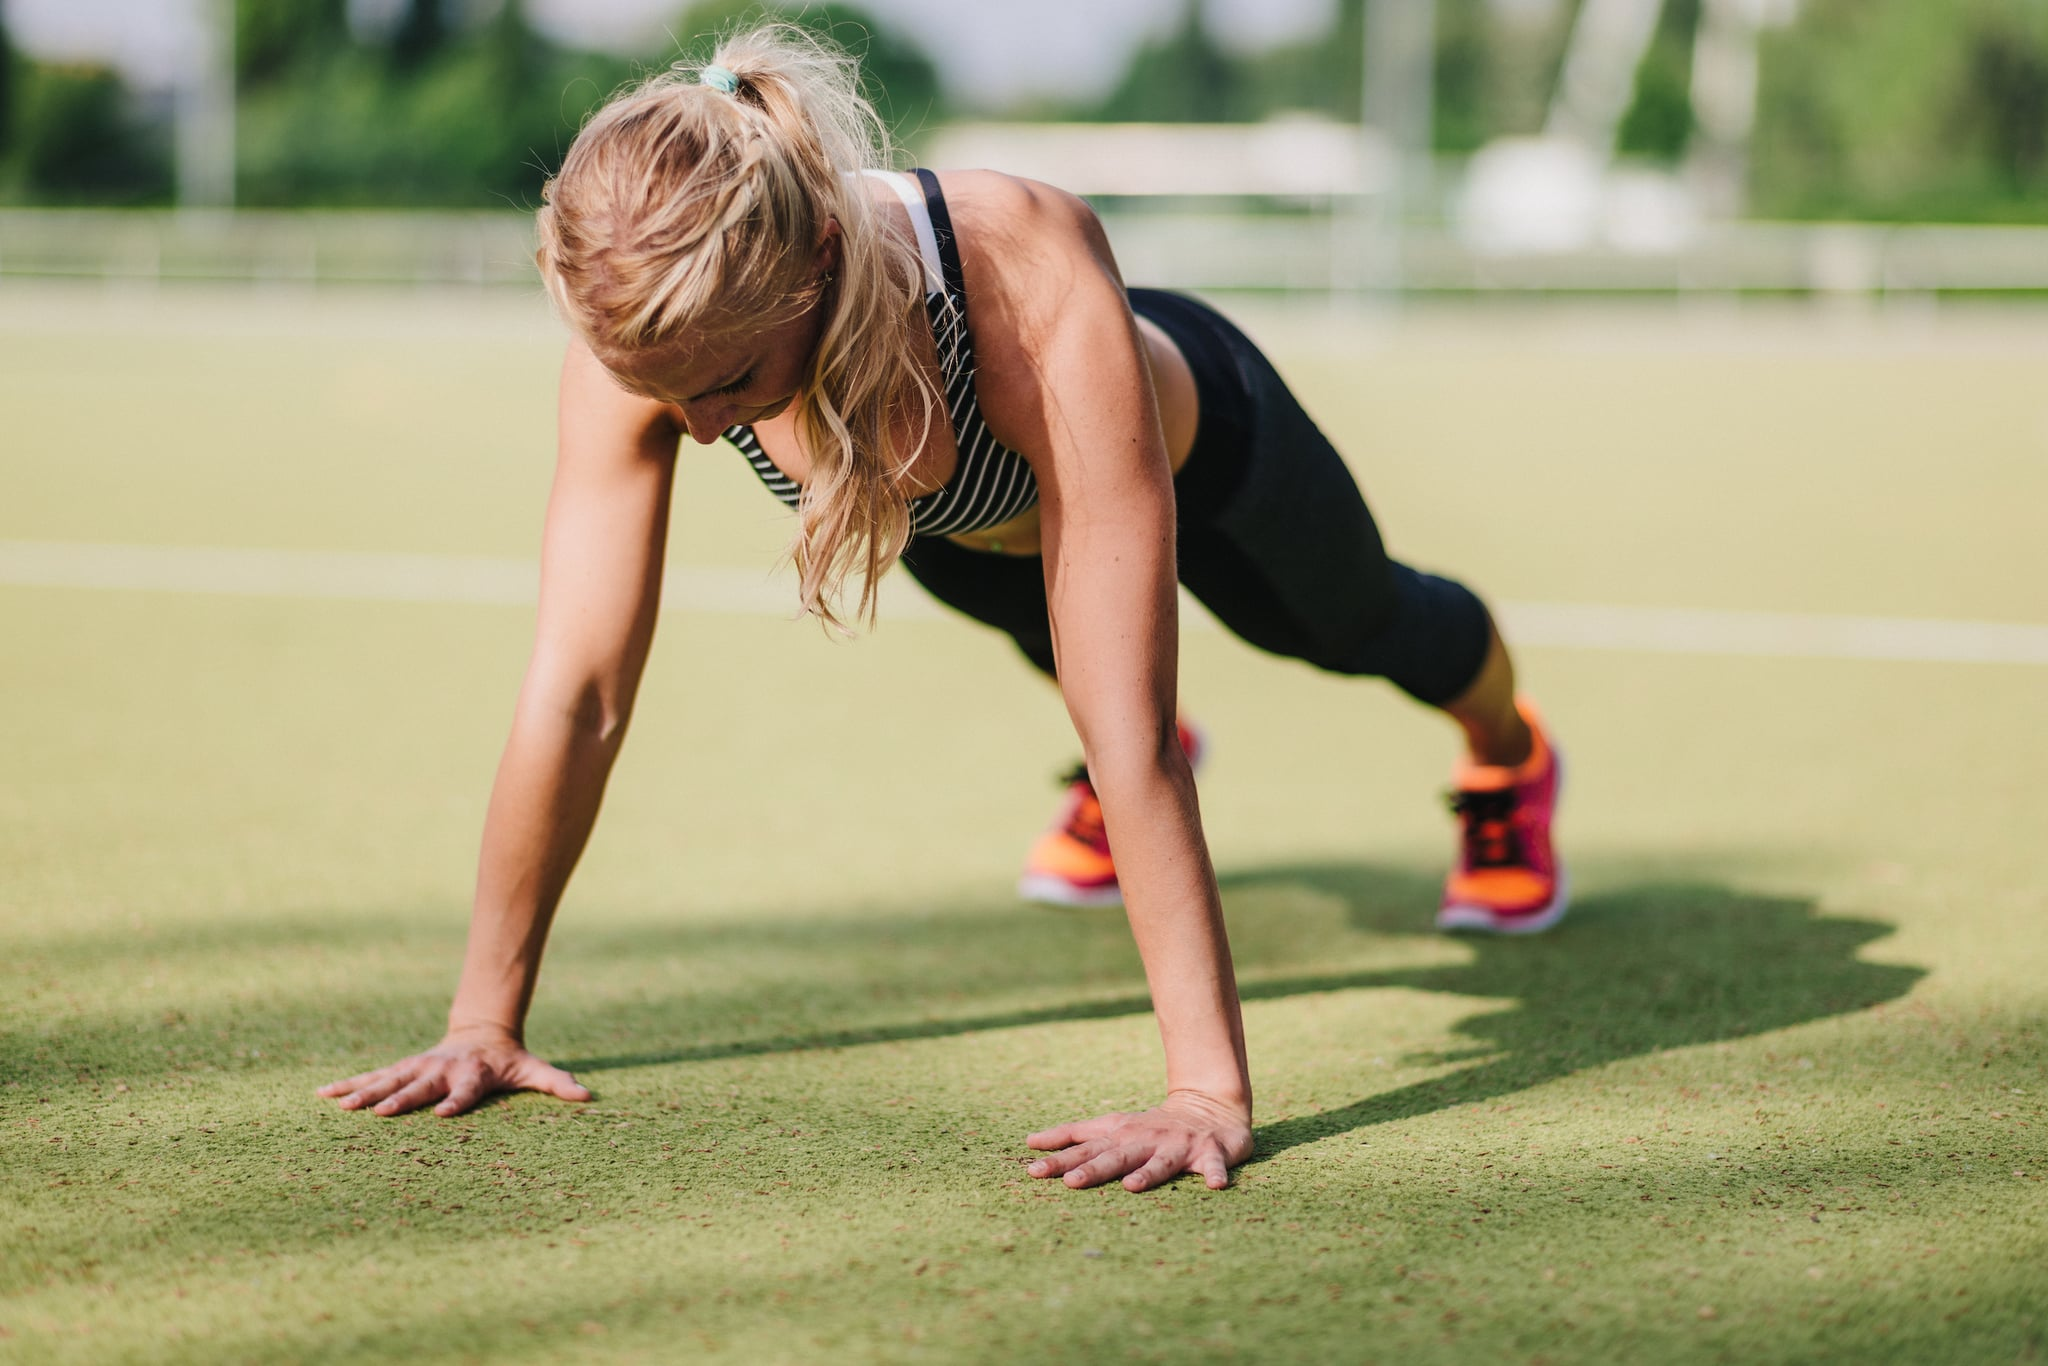 Blond haired woman doing pushup or press-up on a sports field.